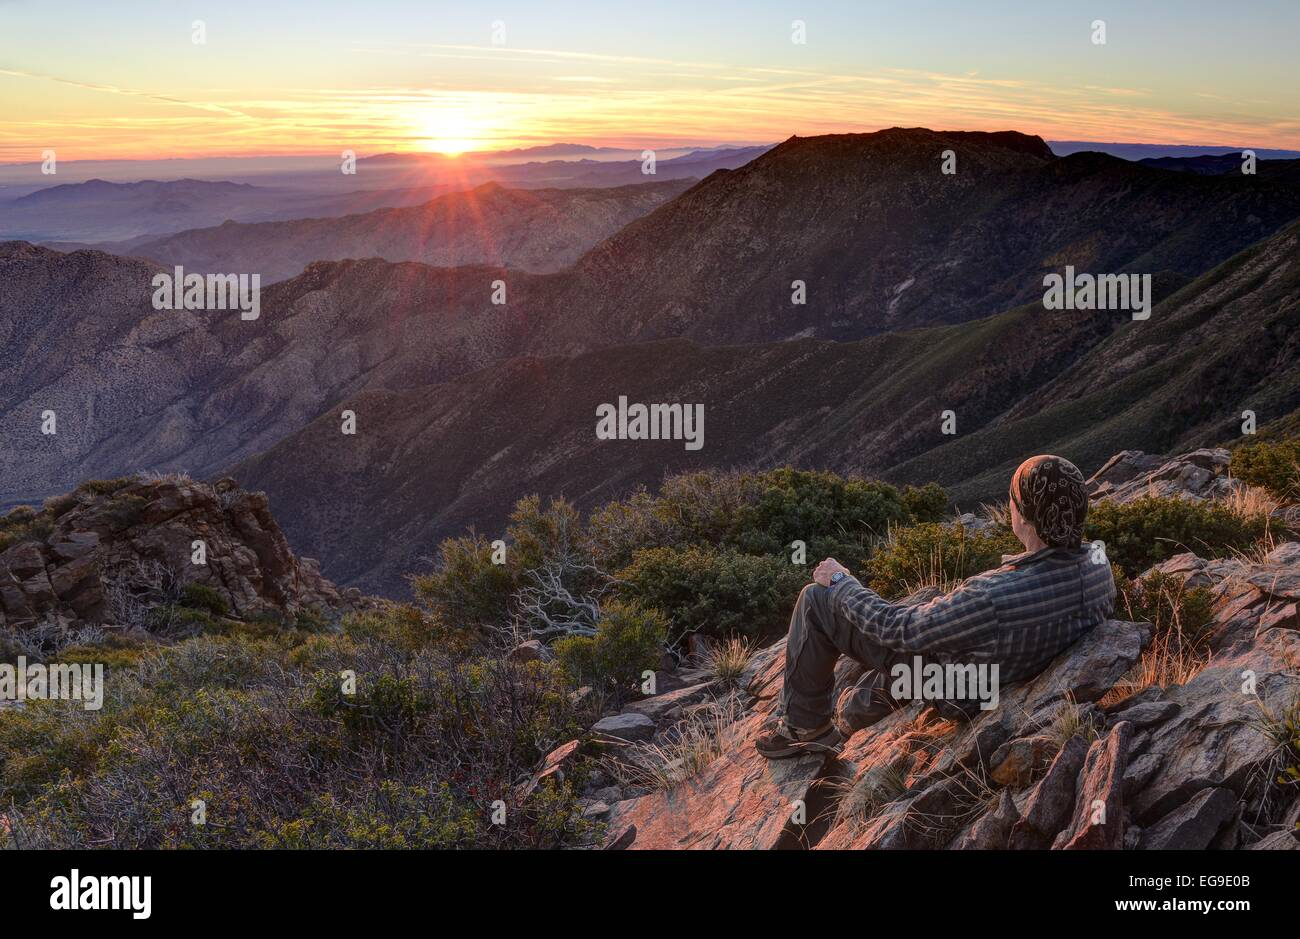 USA, California, Cleveland National Forest, Hiker looking at sunrise - Stock Image